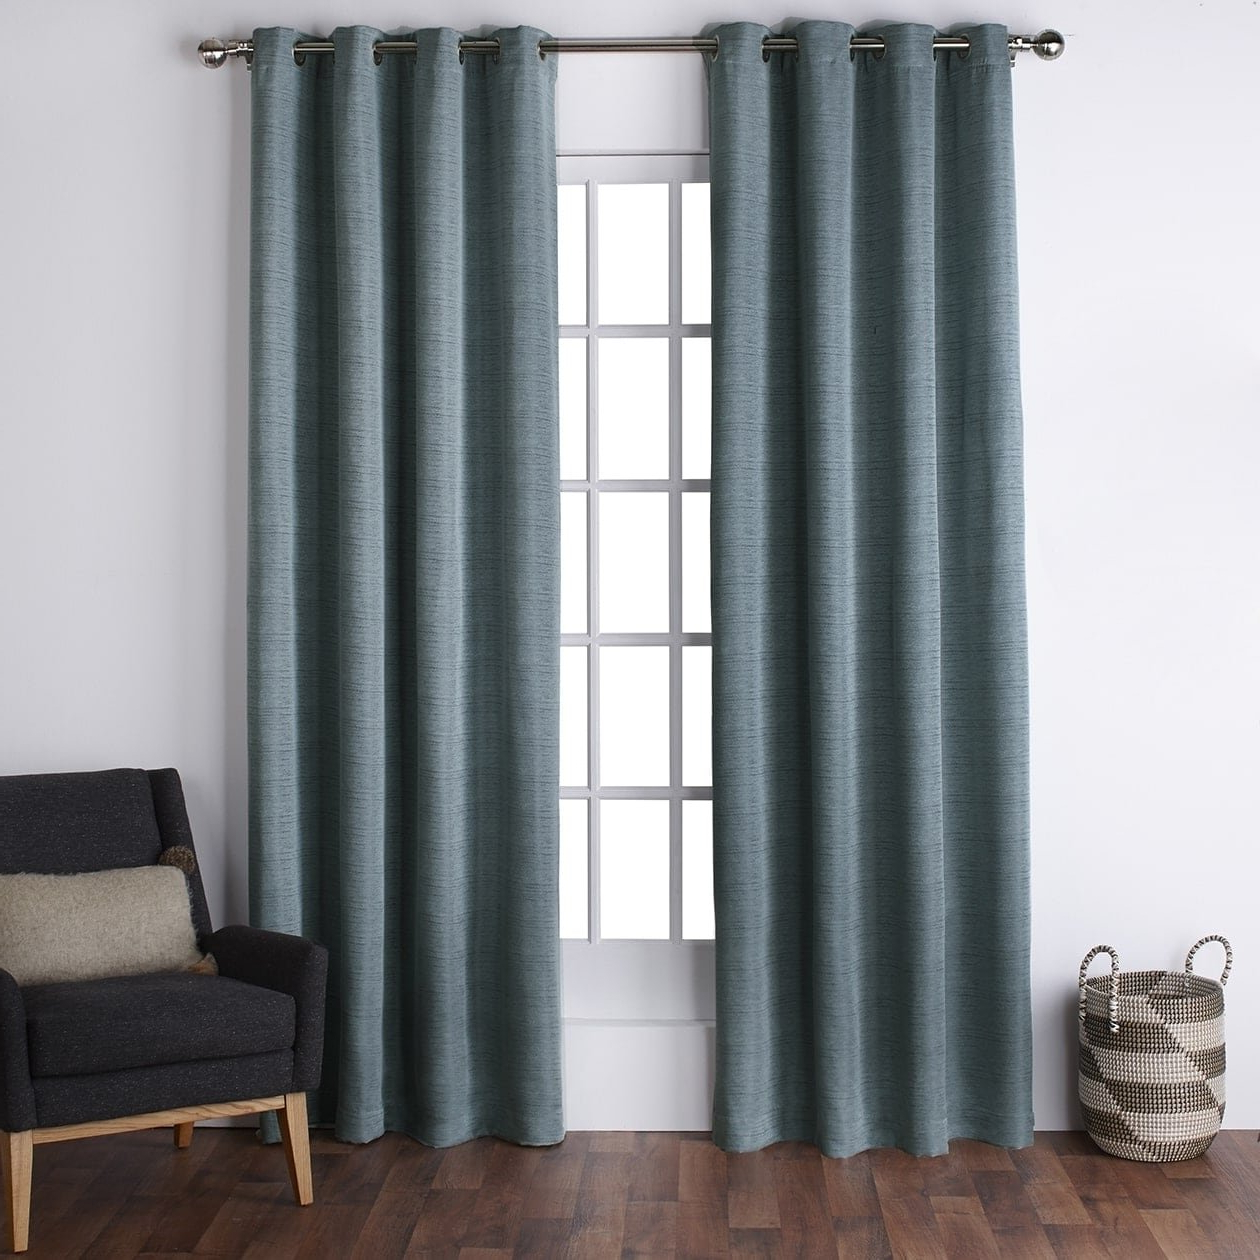 Current Ati Home Copper Grove Ashclyst Faux Silk Grommet Top Window With Regard To Copper Grove Fulgence Faux Silk Grommet Top Panel Curtains (View 6 of 20)